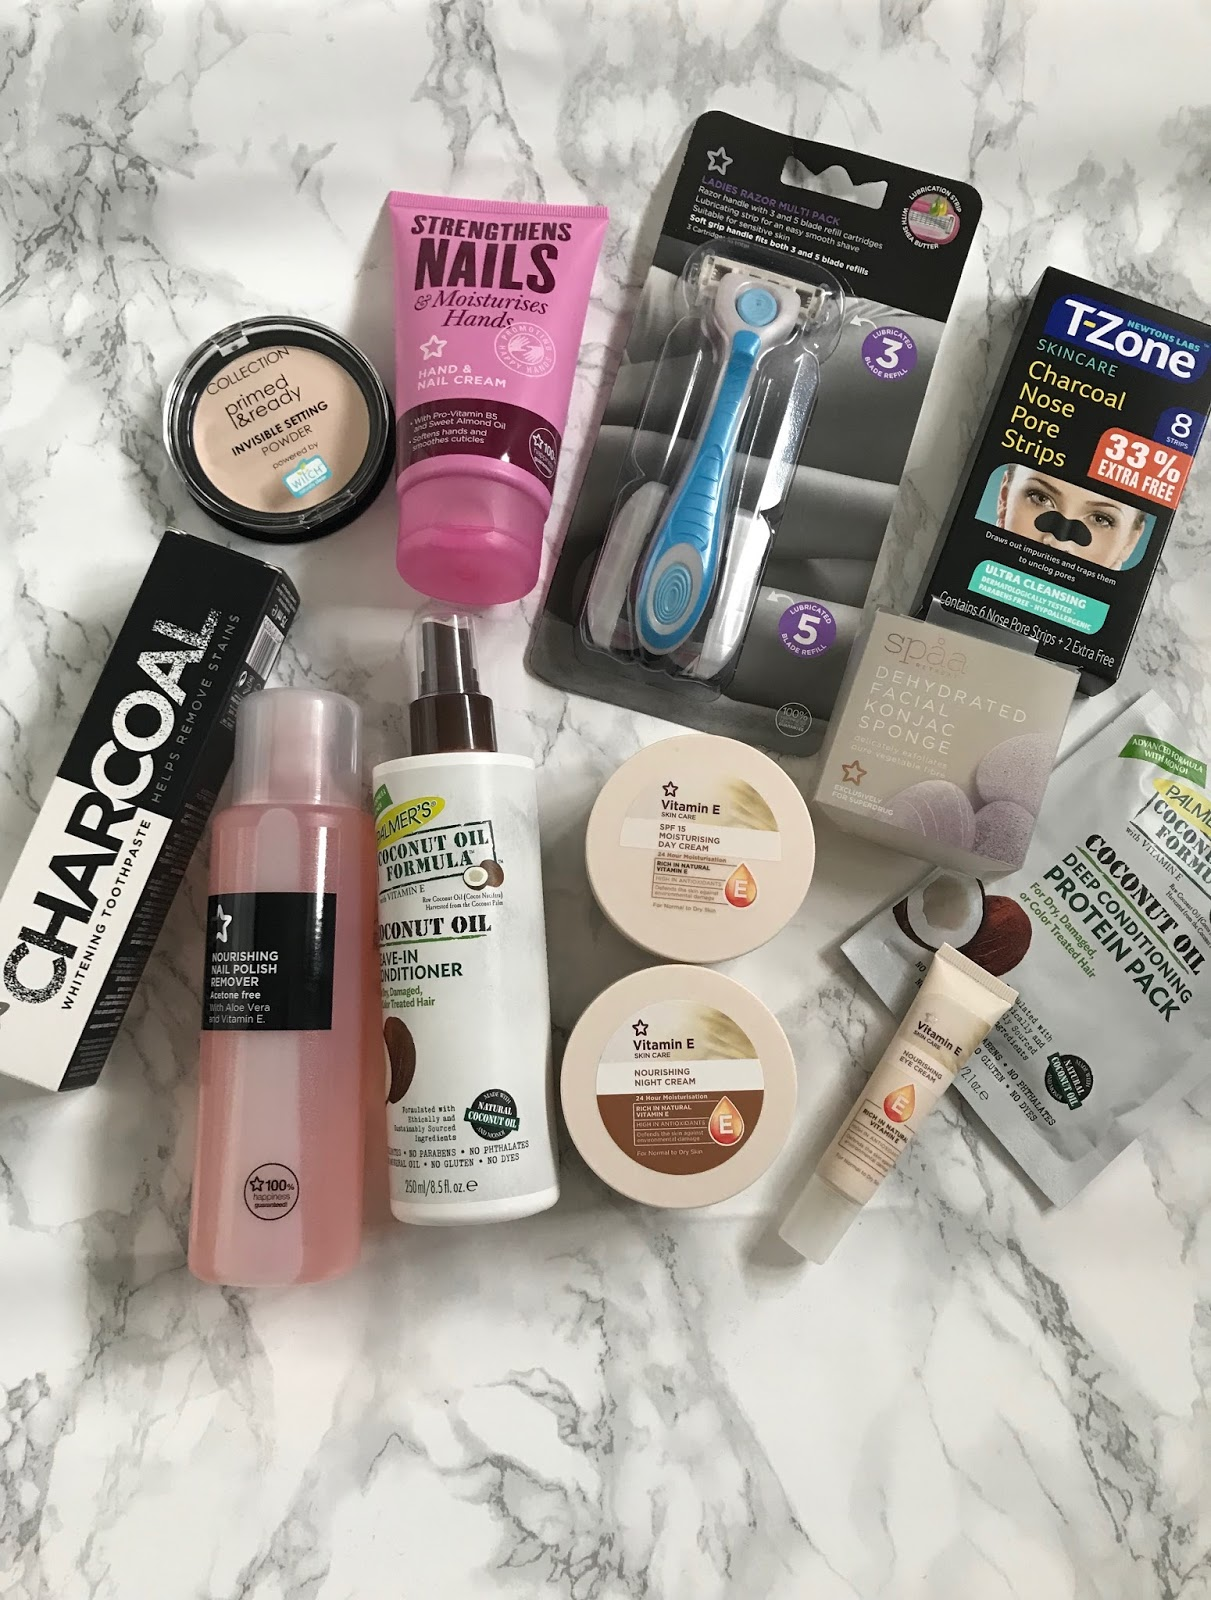 22abead6d05 Superdrug Haul 2018. I have been eyeing up some products mainly  skincare/hair care items from Superdrug for the last couple of weeks as  well as a couple ...